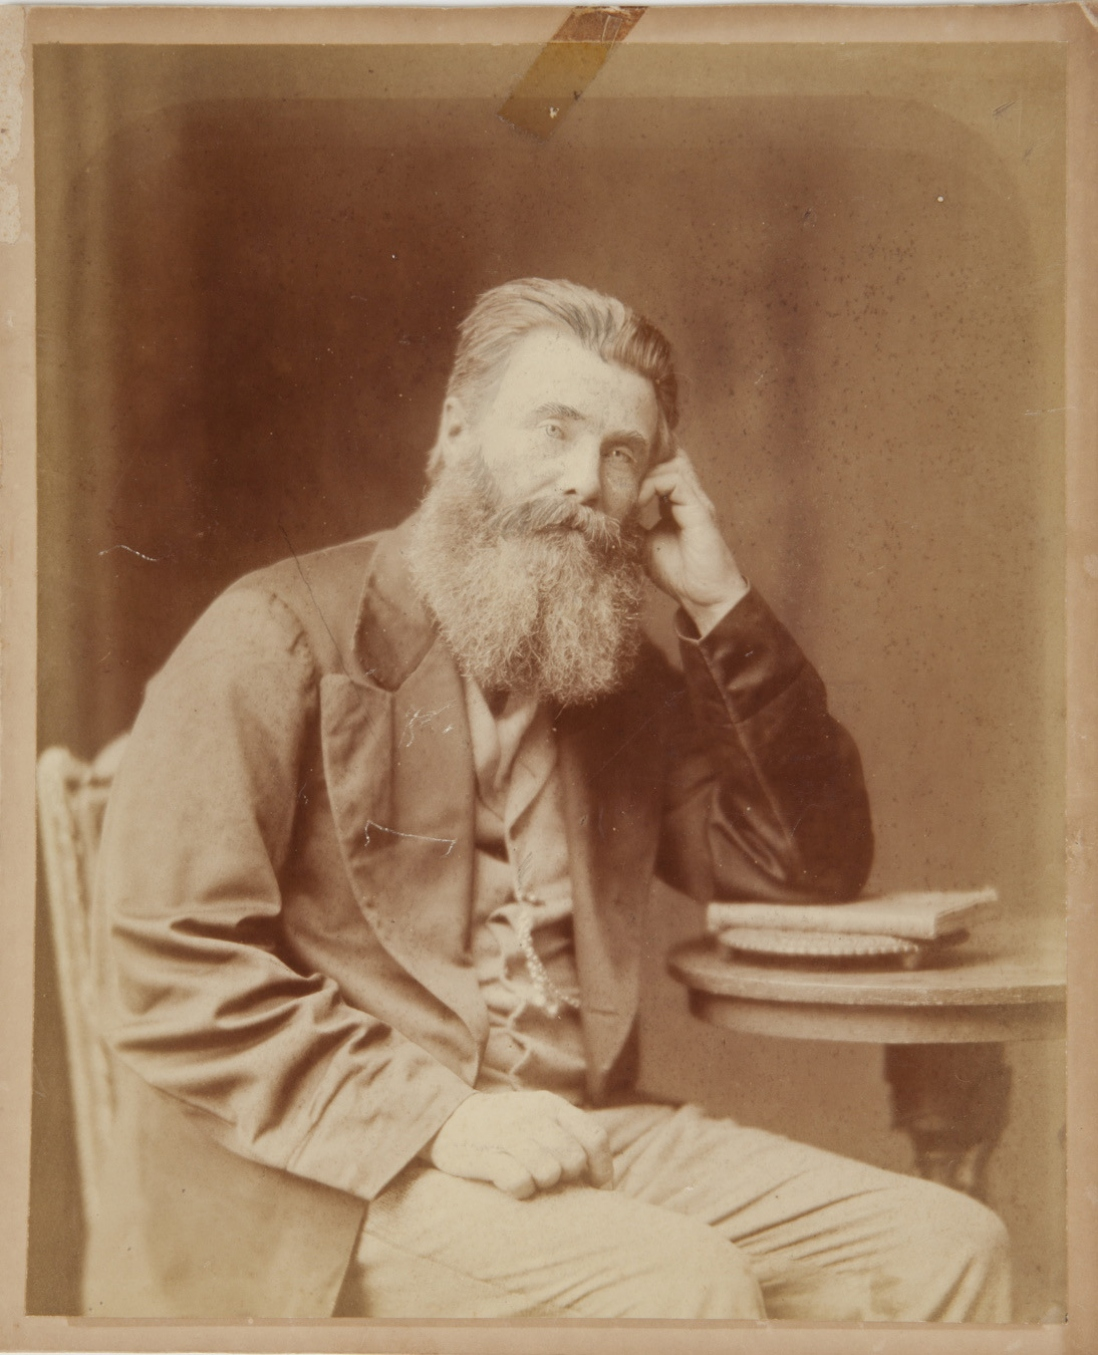 An albumen paper print Paris panel portrait photograph of bearded man seated next to a circular table, resting his left arm on a book on the table. He wears light coloured pants and waistcoat with darker coloured jacket.